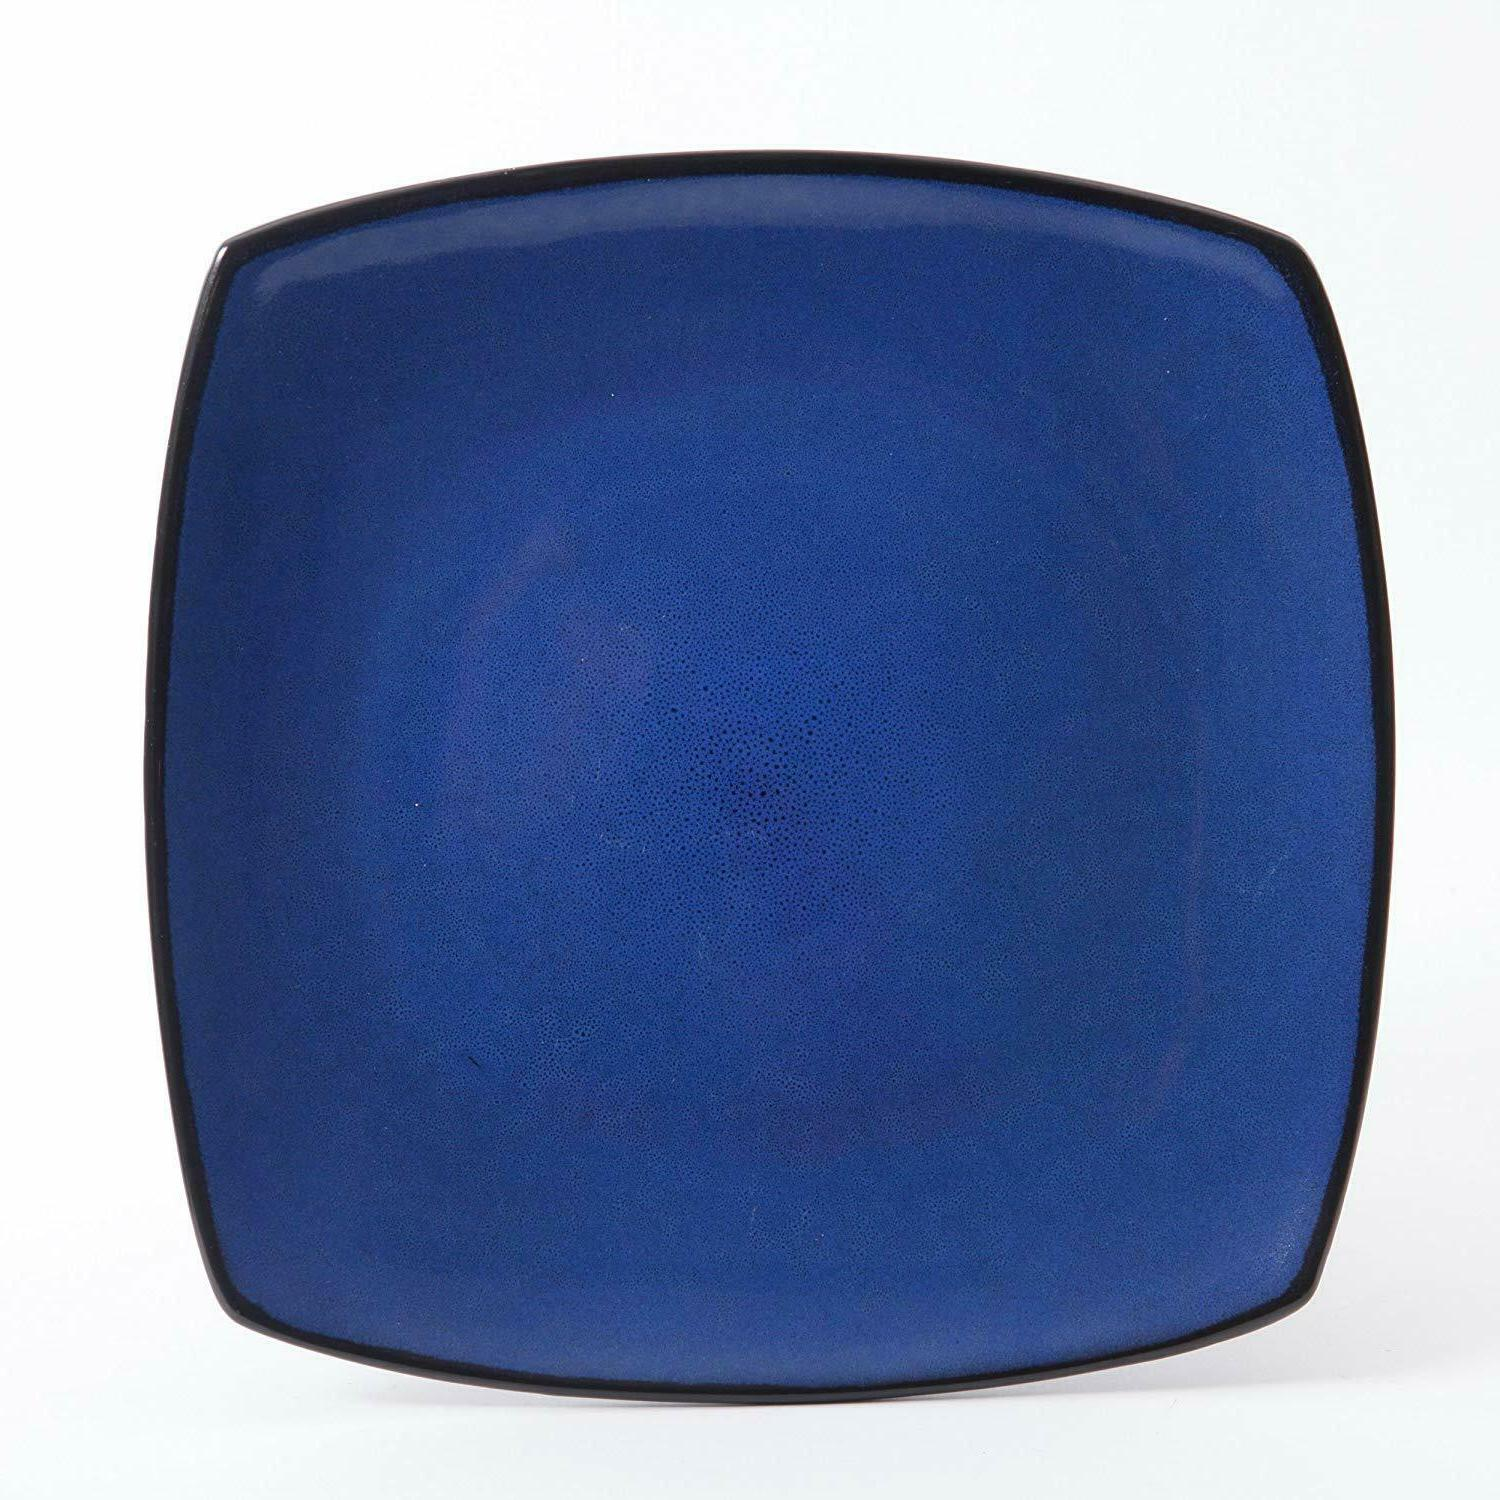 Dinnerware Square Dinner Plates Bowls Home Blue